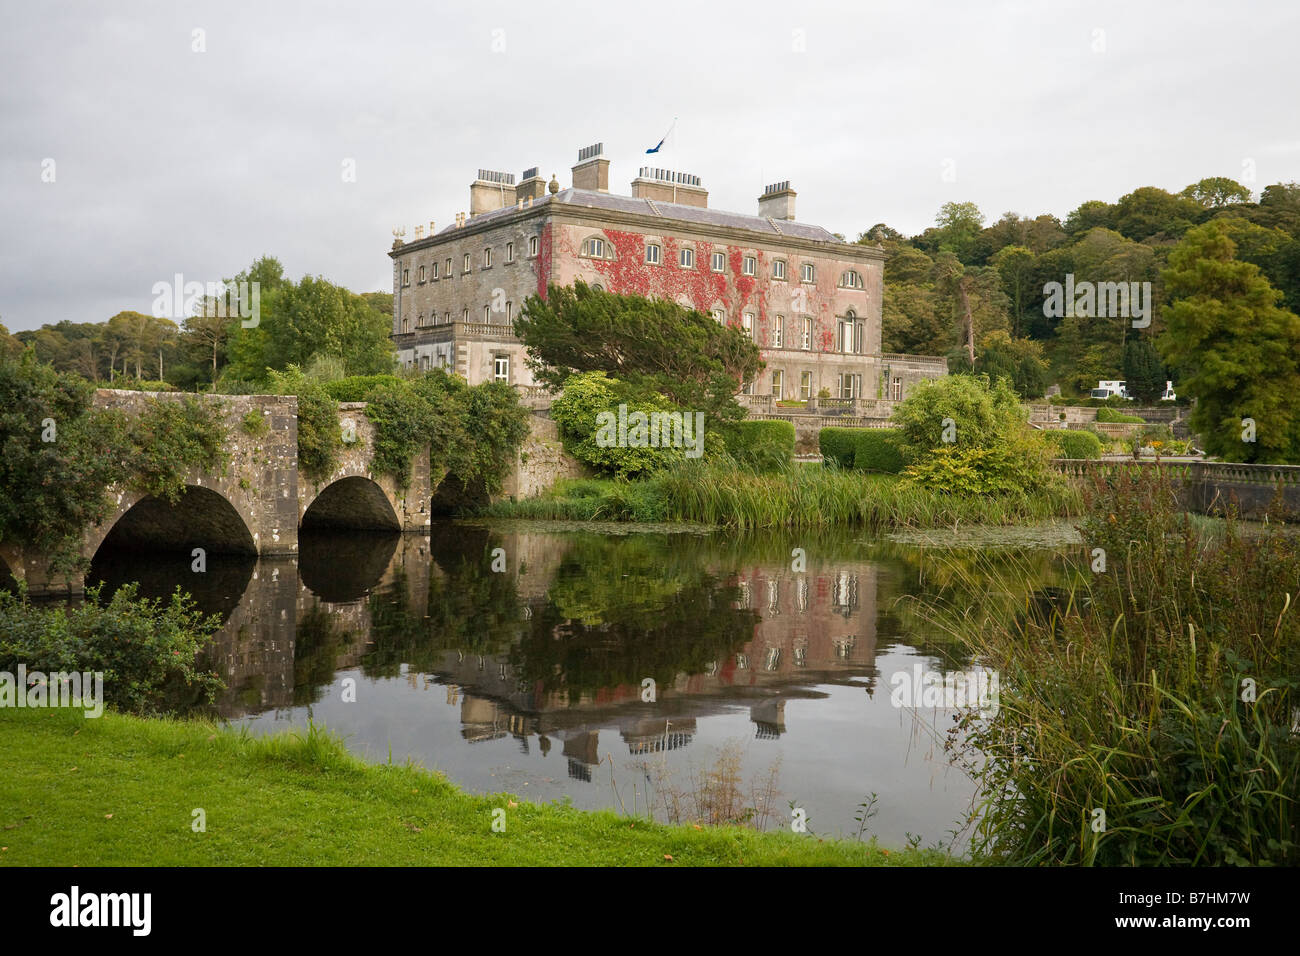 Westport House and Bridge. An arched bridge leads to the red ivy covered mansion which is reflected in the front - Stock Image